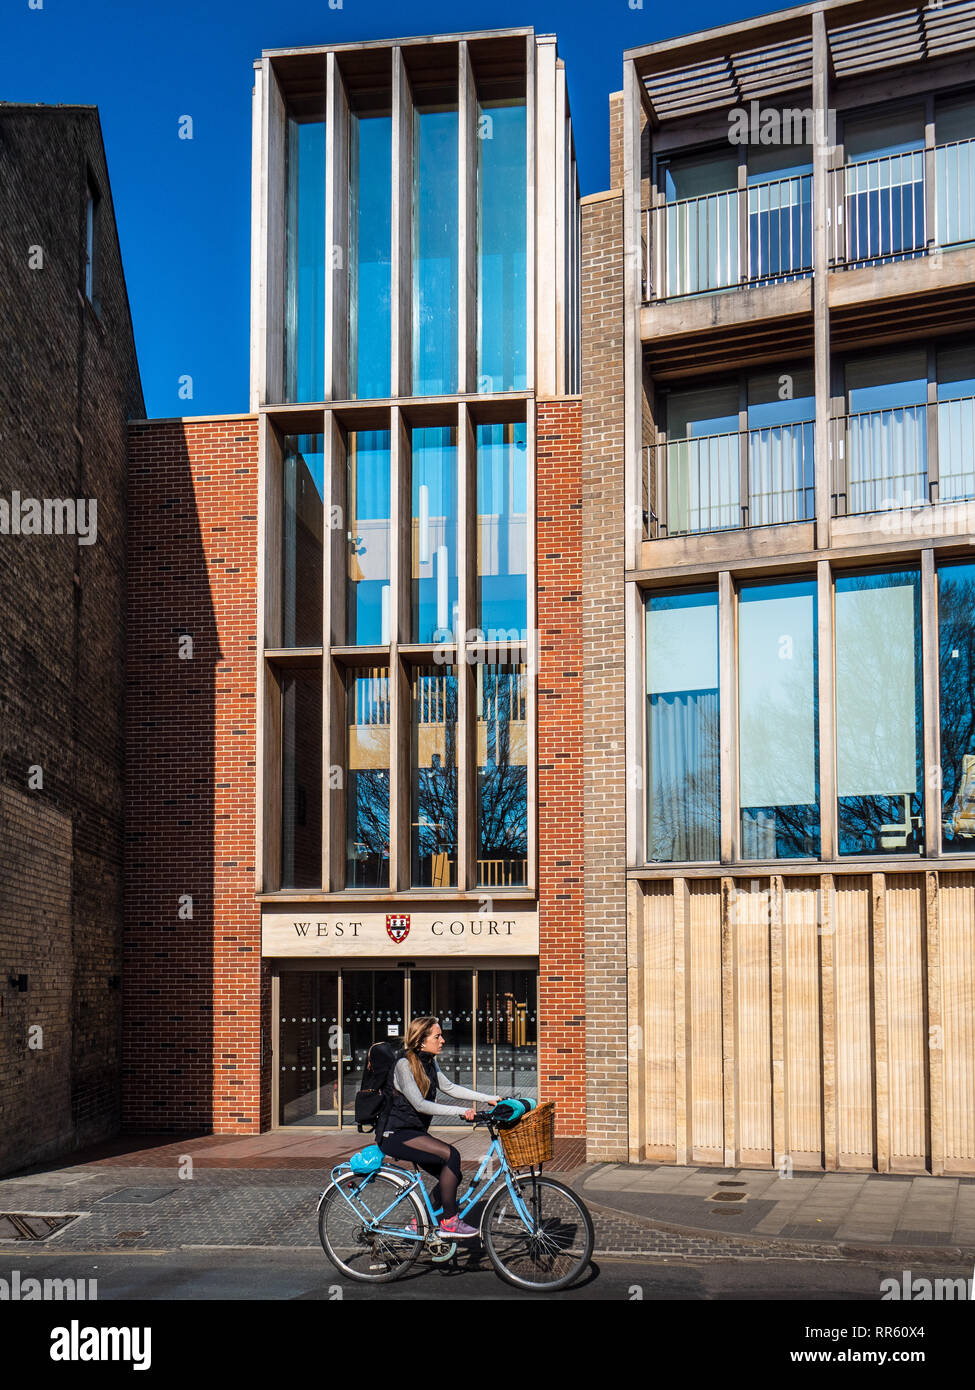 Jesus College West Court Cambridge - Entrance to the new West Court Auditorium and Forum - Cambridge Architecture - Níall McLaughlin Architects - 2017 - Stock Image